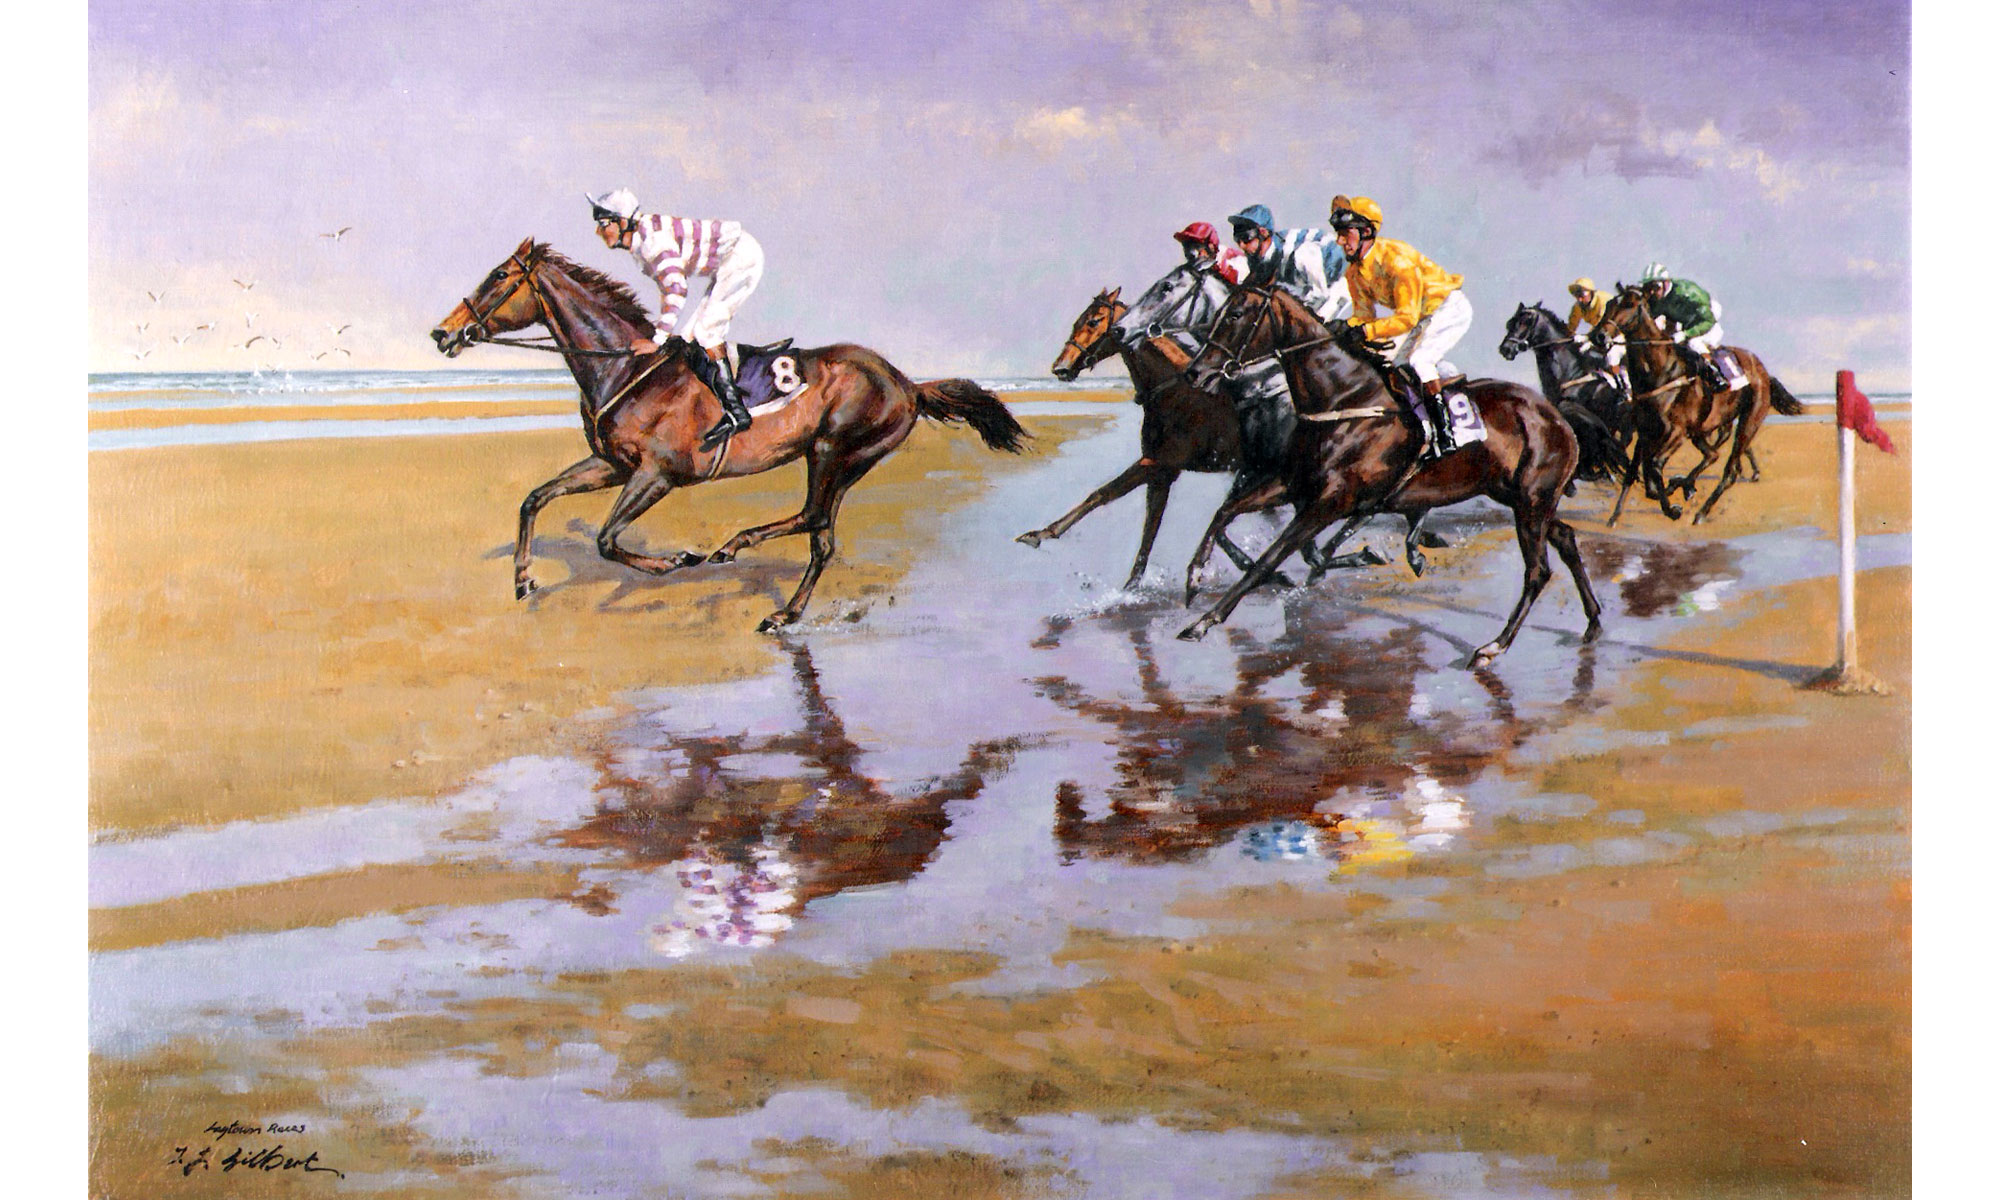 Laytown Horse Races Painting by Terence J Gilbert Oil on Board